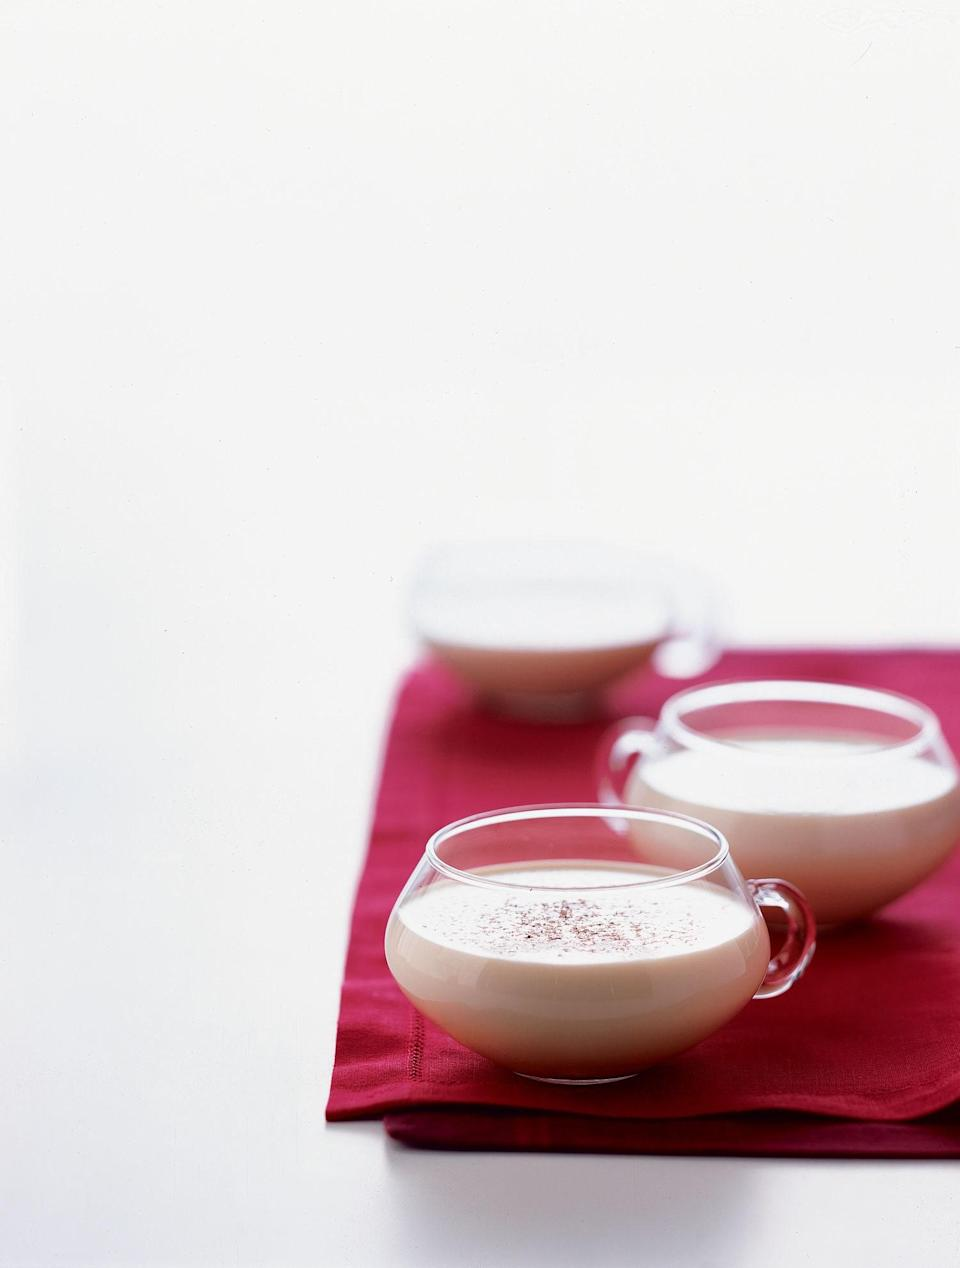 """<p>1 1/2 ounces <a href=""""http://www.baileys.com/Gateway/"""" rel=""""nofollow noopener"""" target=""""_blank"""" data-ylk=""""slk:Baileys Irish Cream"""" class=""""link rapid-noclick-resp"""">Baileys Irish Cream</a></p> <p>2 ounces hot chocolate</p> <p>1/2 ounce creme de cacao</p> <p>1/2 ounce creme de menthe</p> <p>Whipped cream (for garnish)</p> <p>Candy cane (for garnish)</p> <p>Mix all ingredients in a mug and top with whipped cream and candy cane for garnish.</p> <p><em>Created by Haven Rooftop</em></p>"""